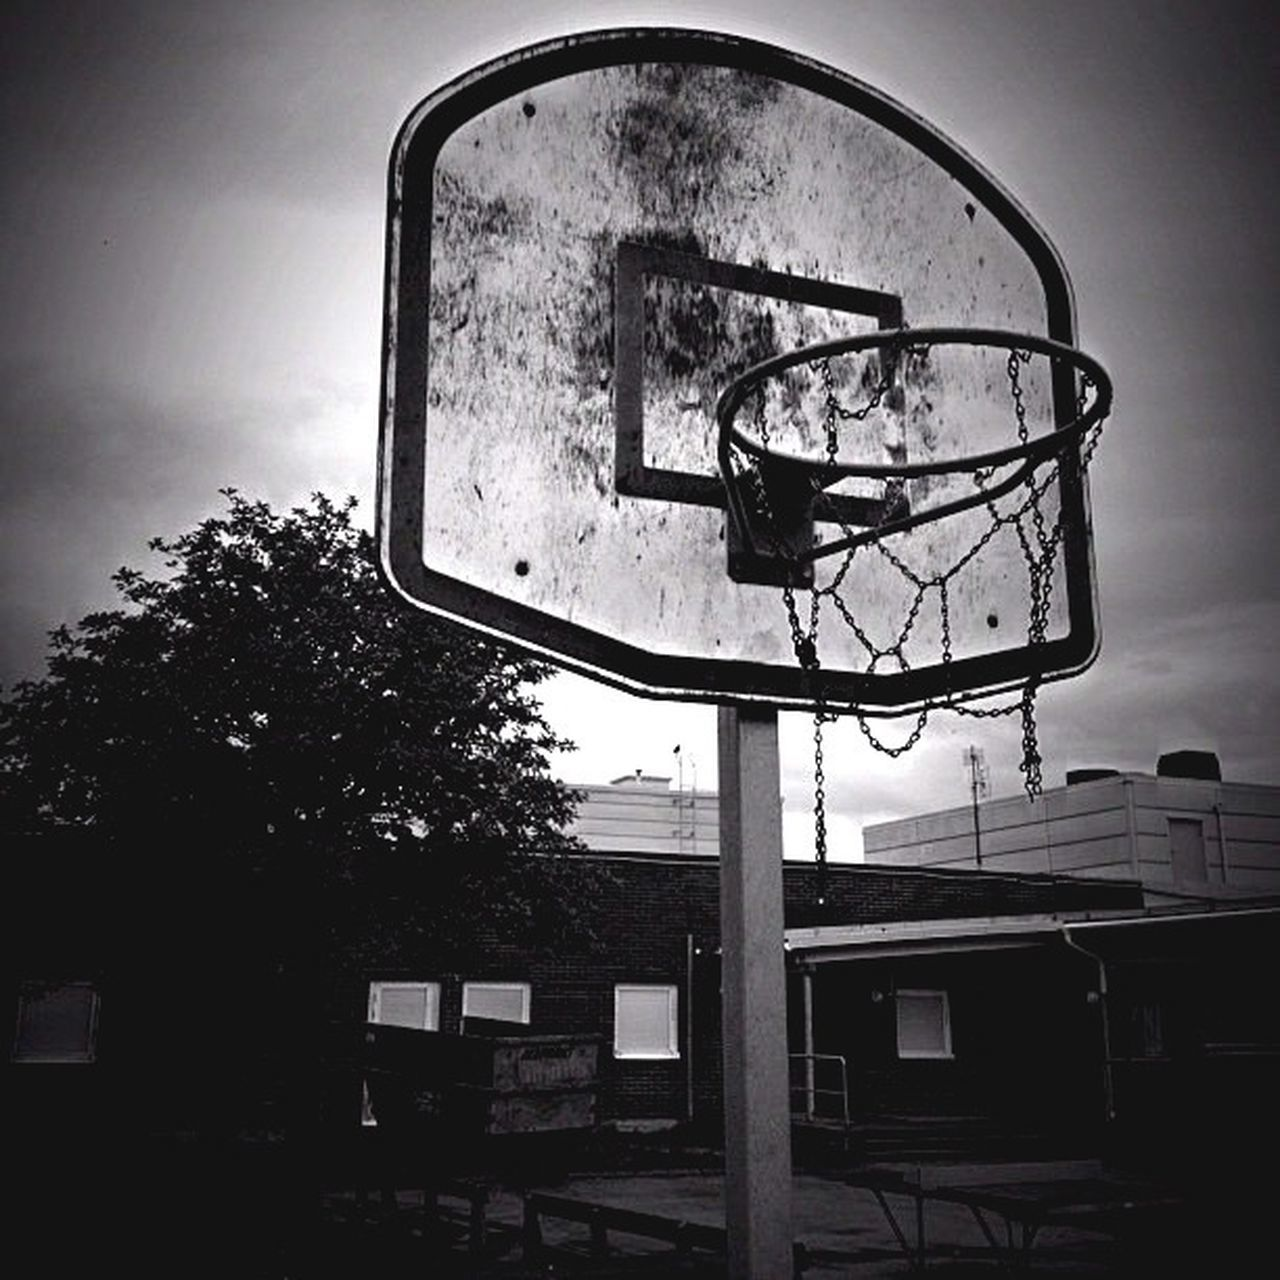 low angle view, built structure, building exterior, architecture, window, tree, sky, technology, electricity, lighting equipment, glass - material, basketball hoop, day, no people, old-fashioned, street light, outdoors, communication, house, time